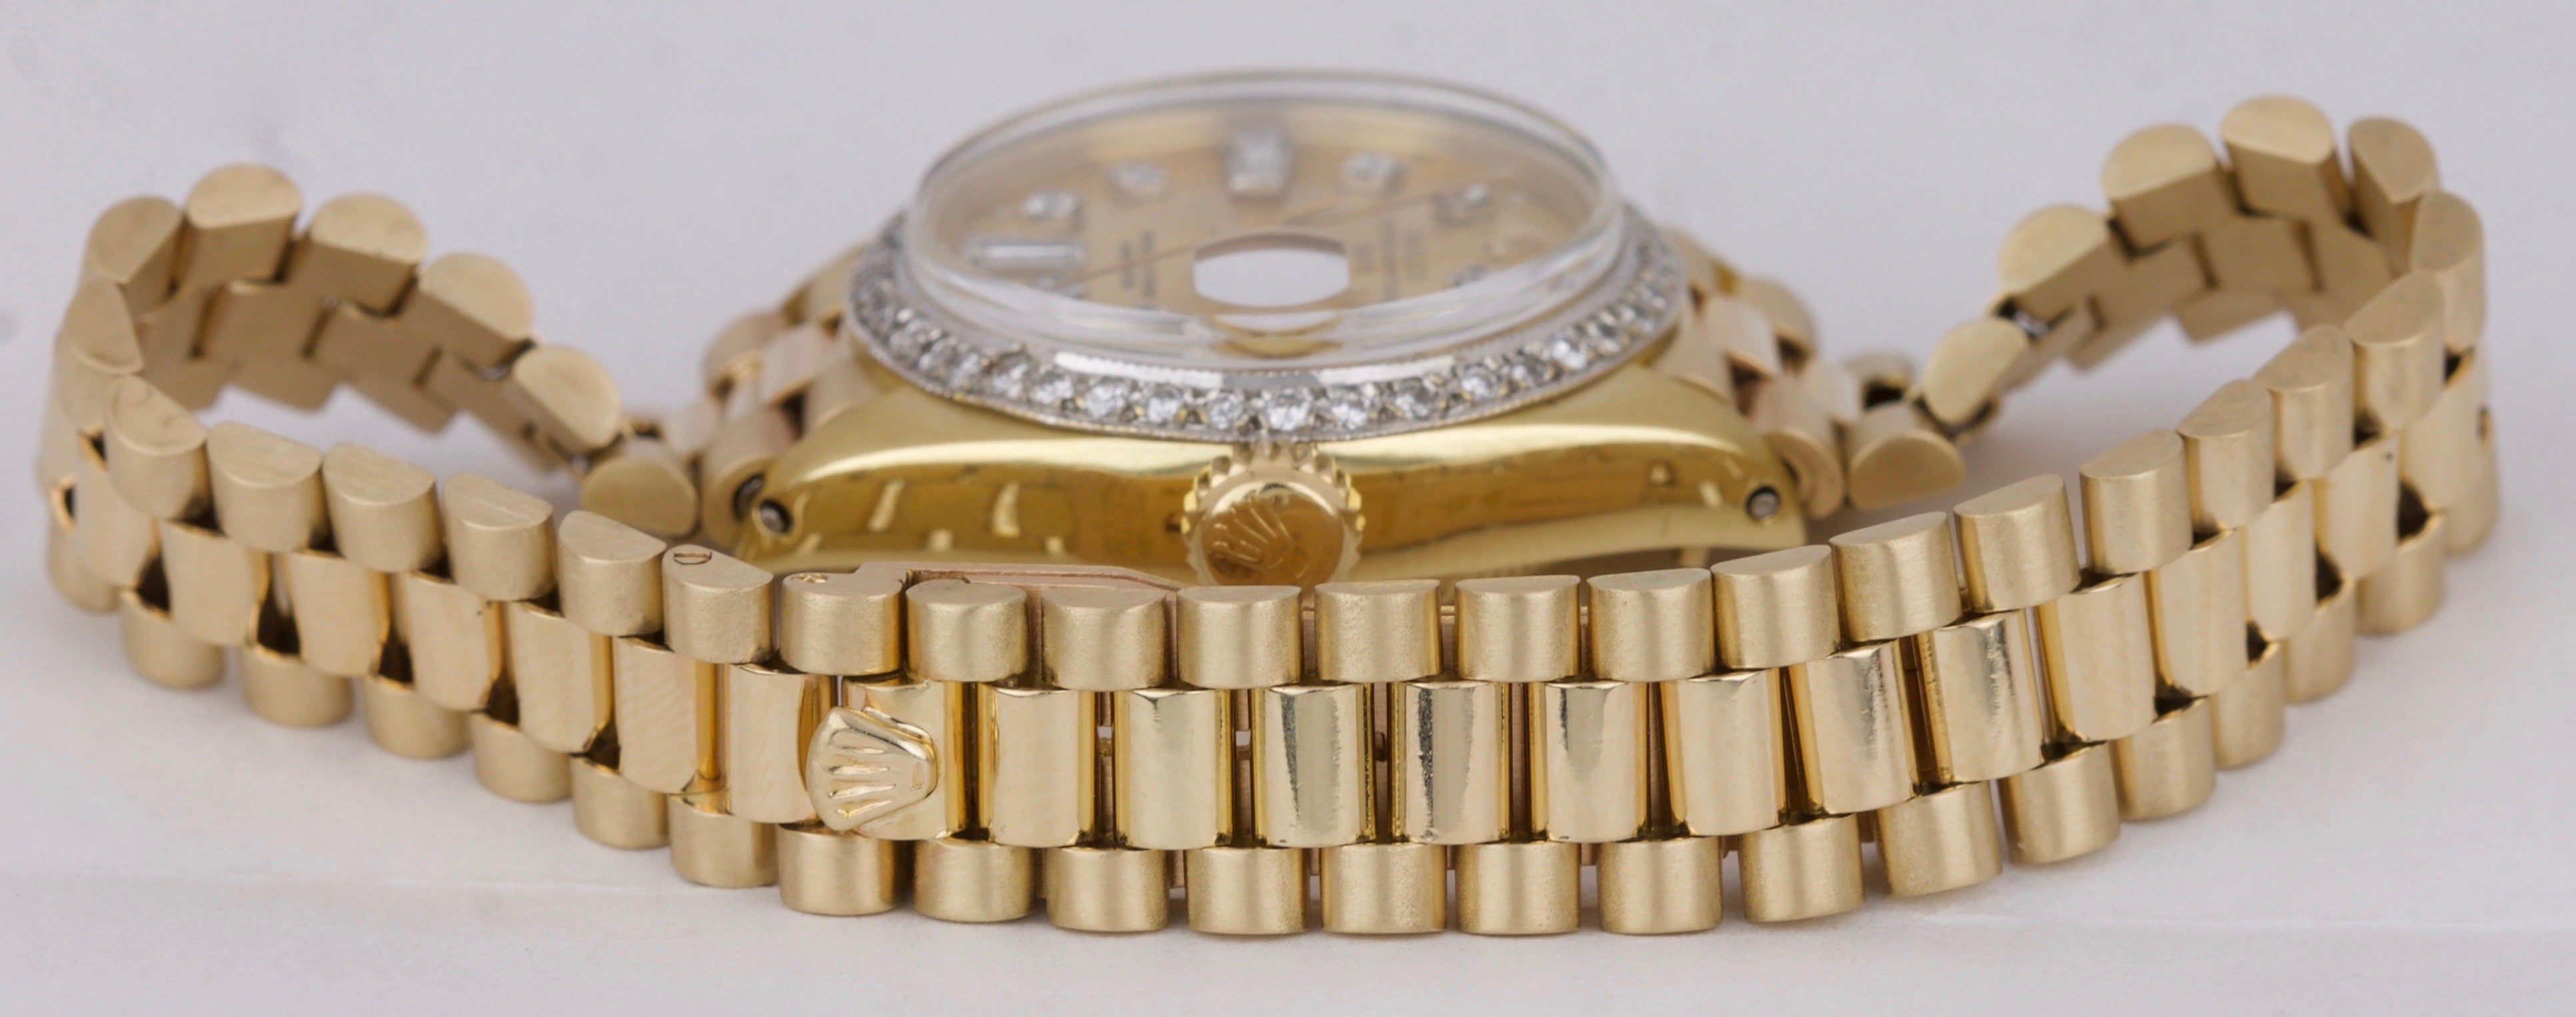 Ladies Rolex Date 6917 President 26mm Diamond Bezel 18K Yellow Gold Watch 69178